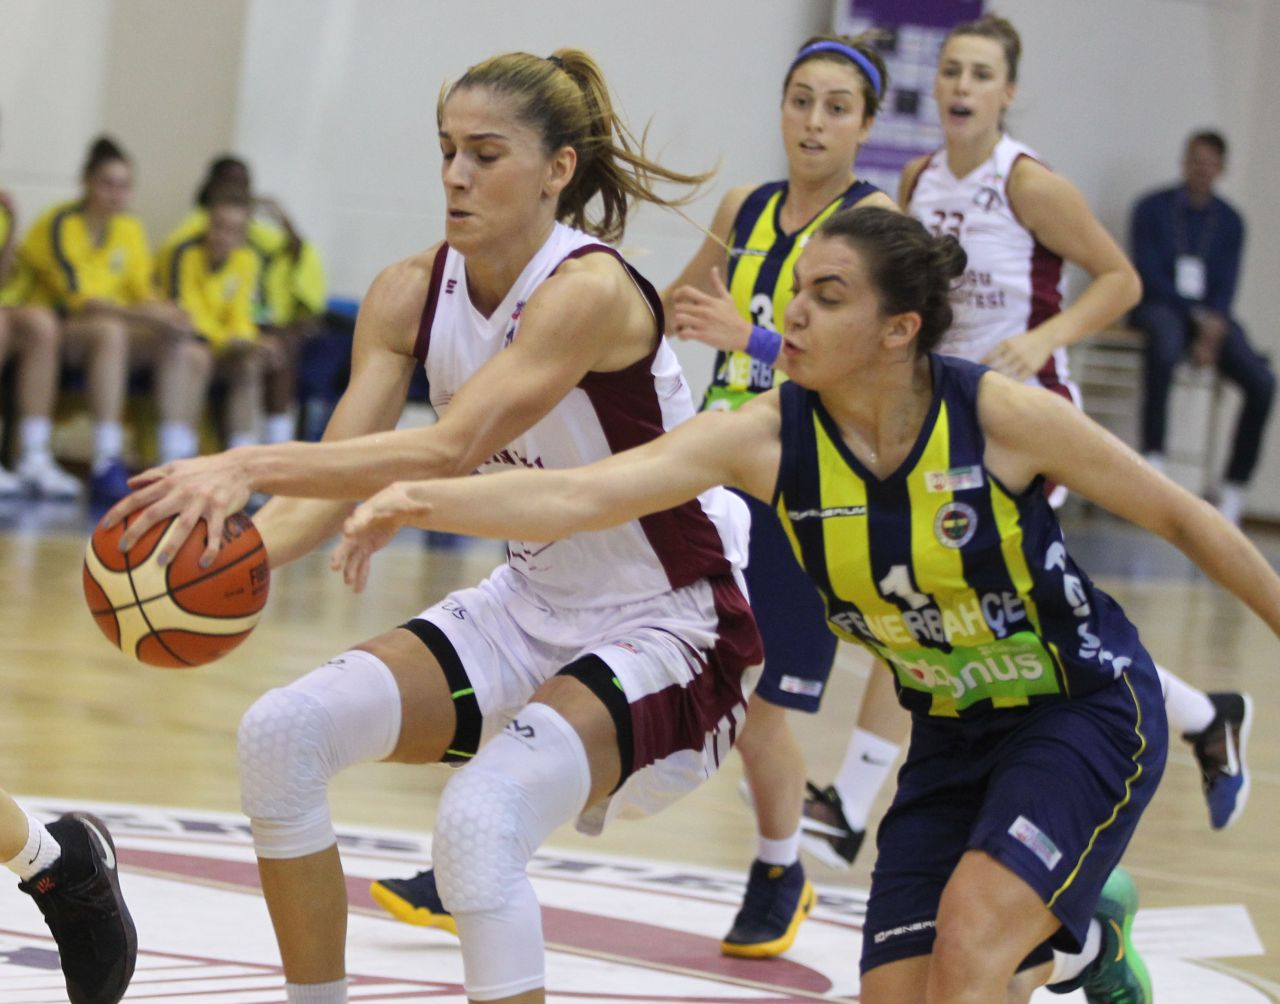 Leadership Challenge in Basketball…. Near East Angels to face Fenerbahçe at the derby match